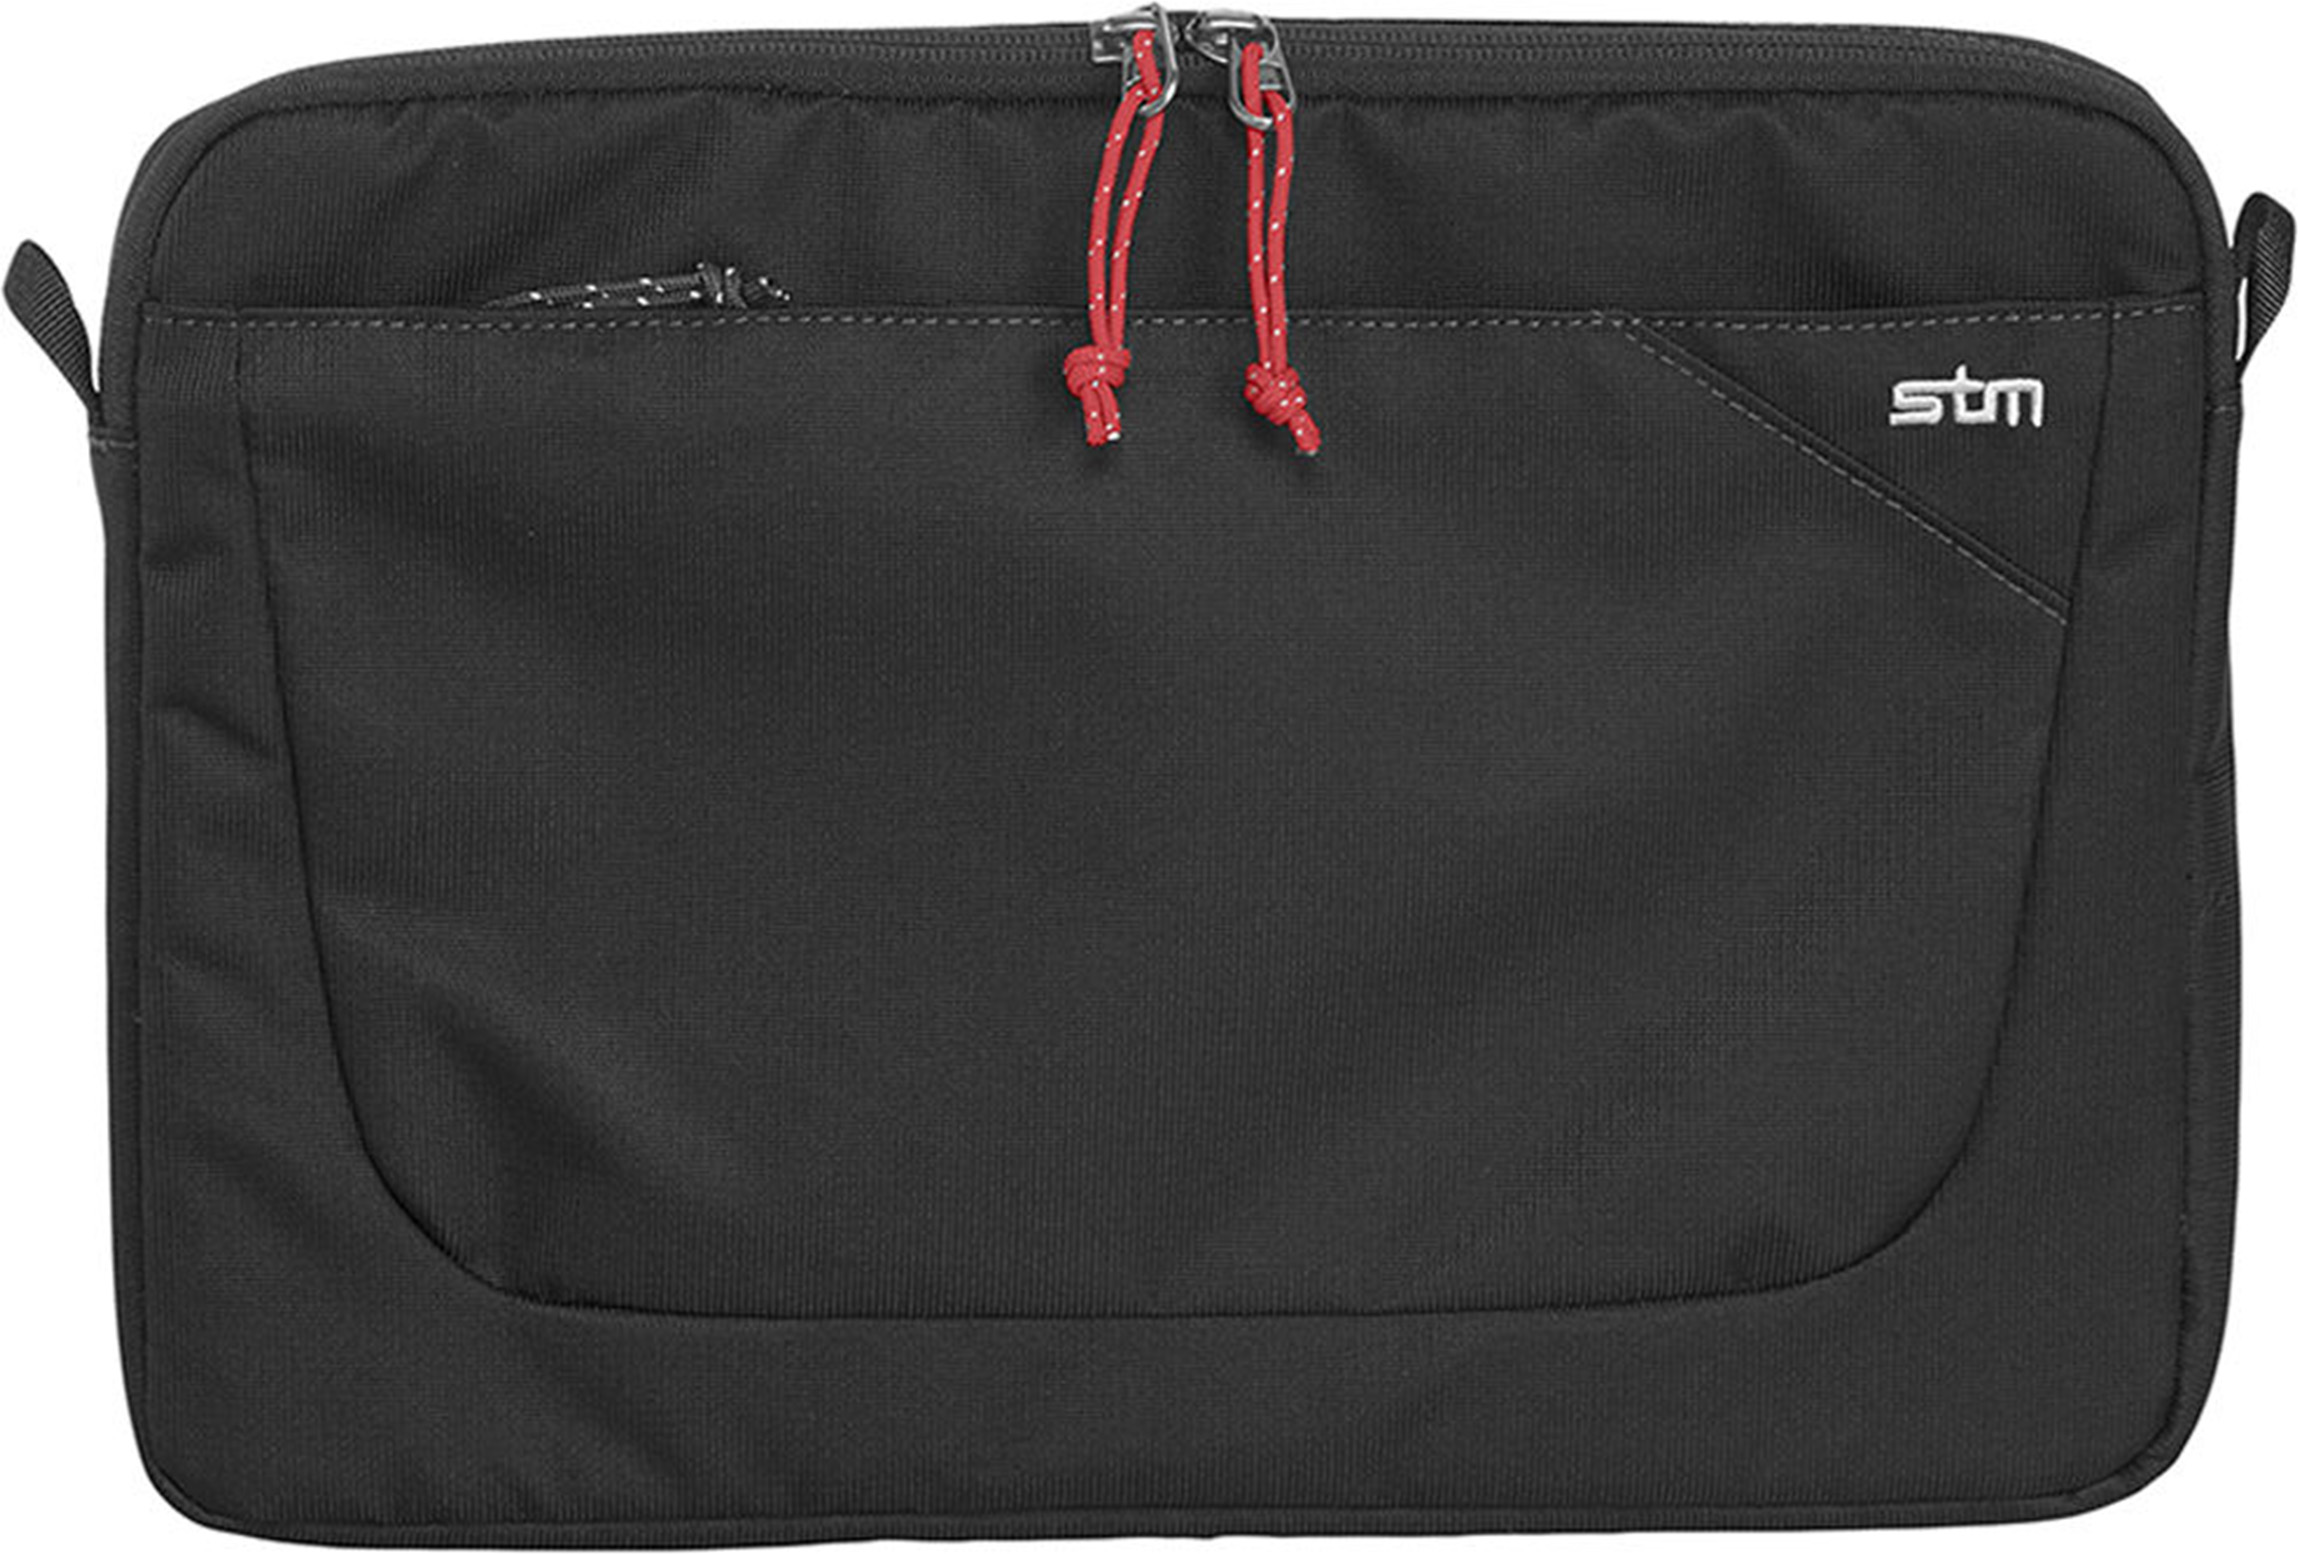 STM Blazer Laptop 3 Sleeve 15  Made with durable water-resistant fabric, this sleeve protects your laptop with 360 degrees of high-density foam. Plus, it has a slip pocket for a tablet, a place for some paperwork, and a removable shoulder strap.